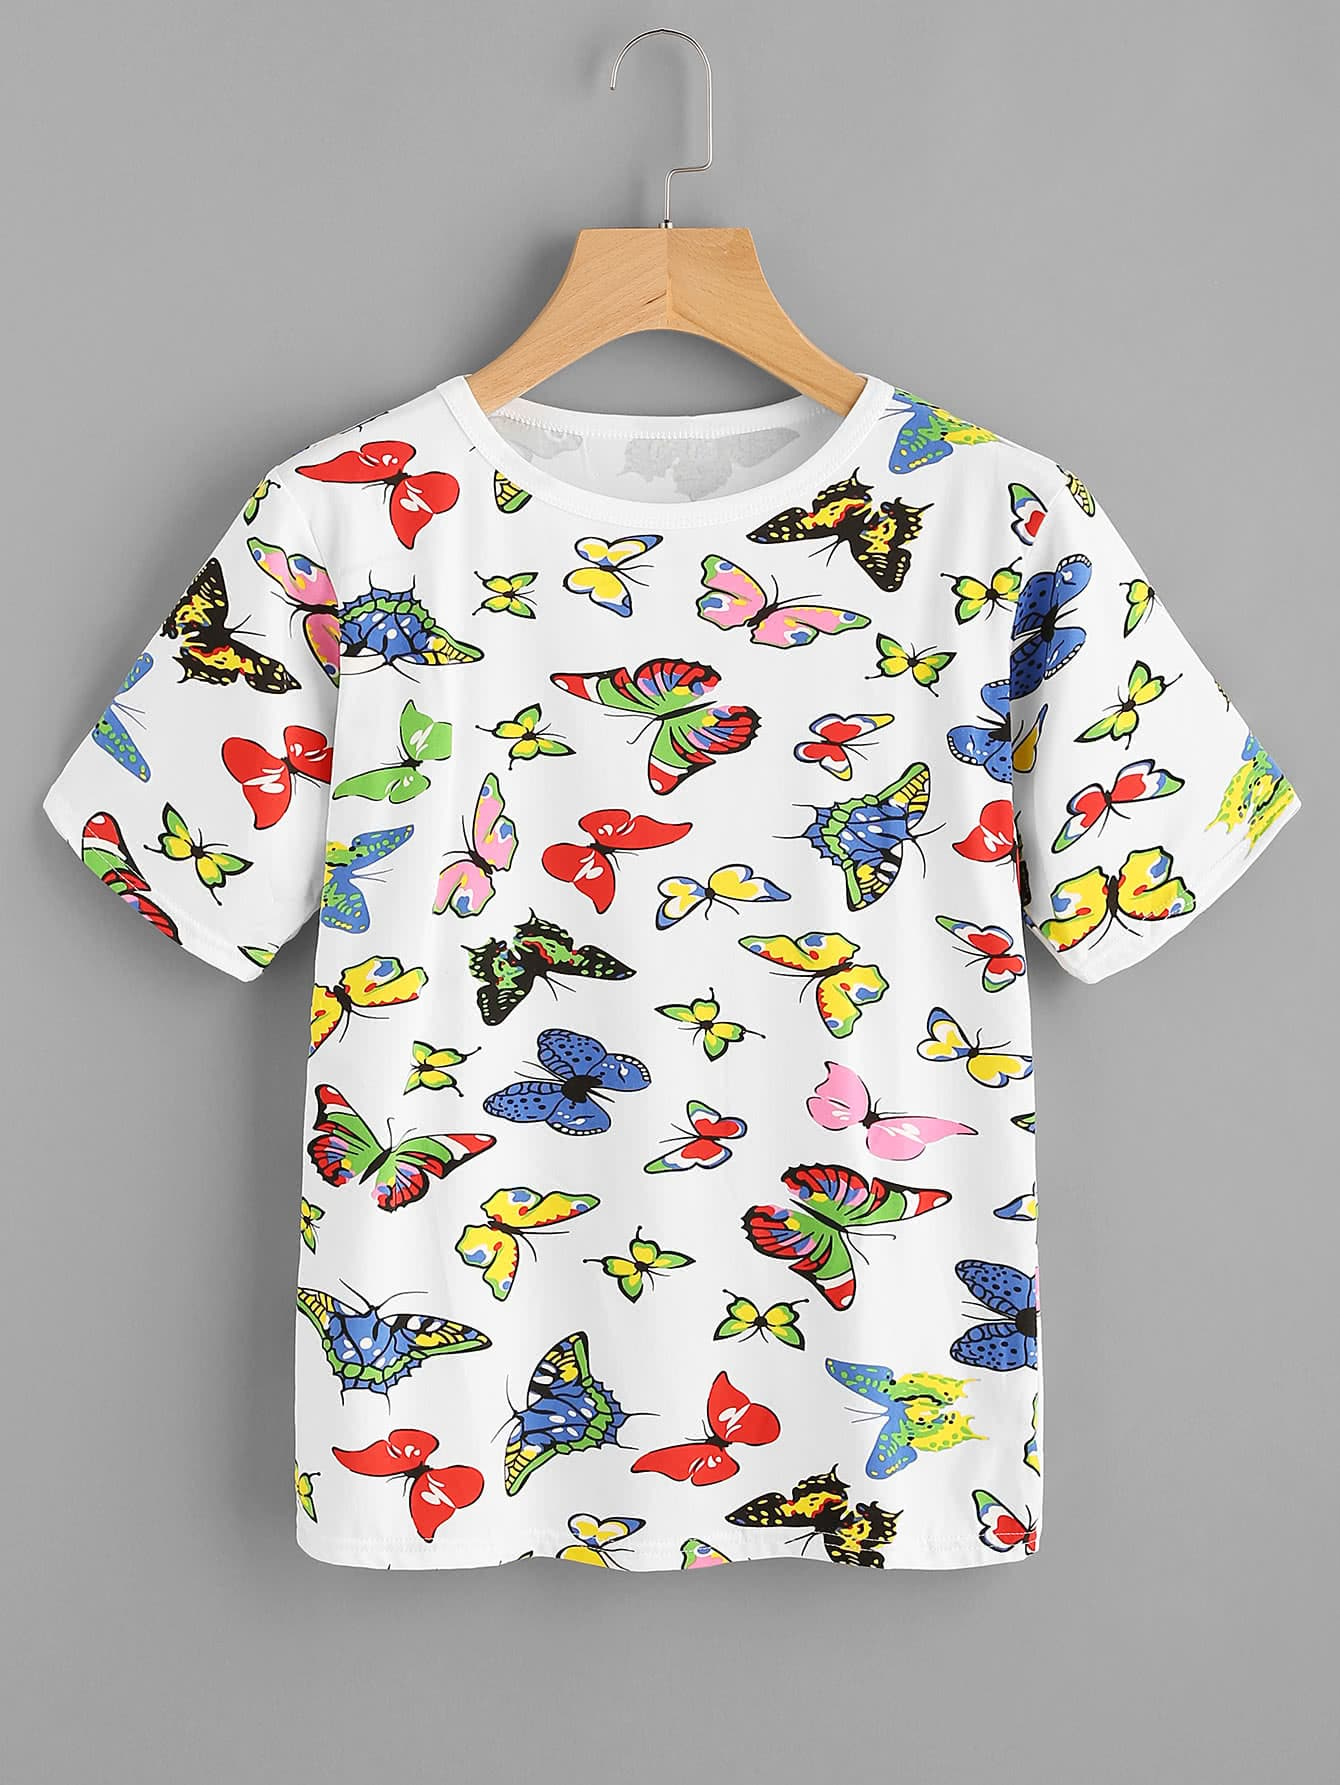 Allover Butterfly Print T shirt Apparel and Accessories Products